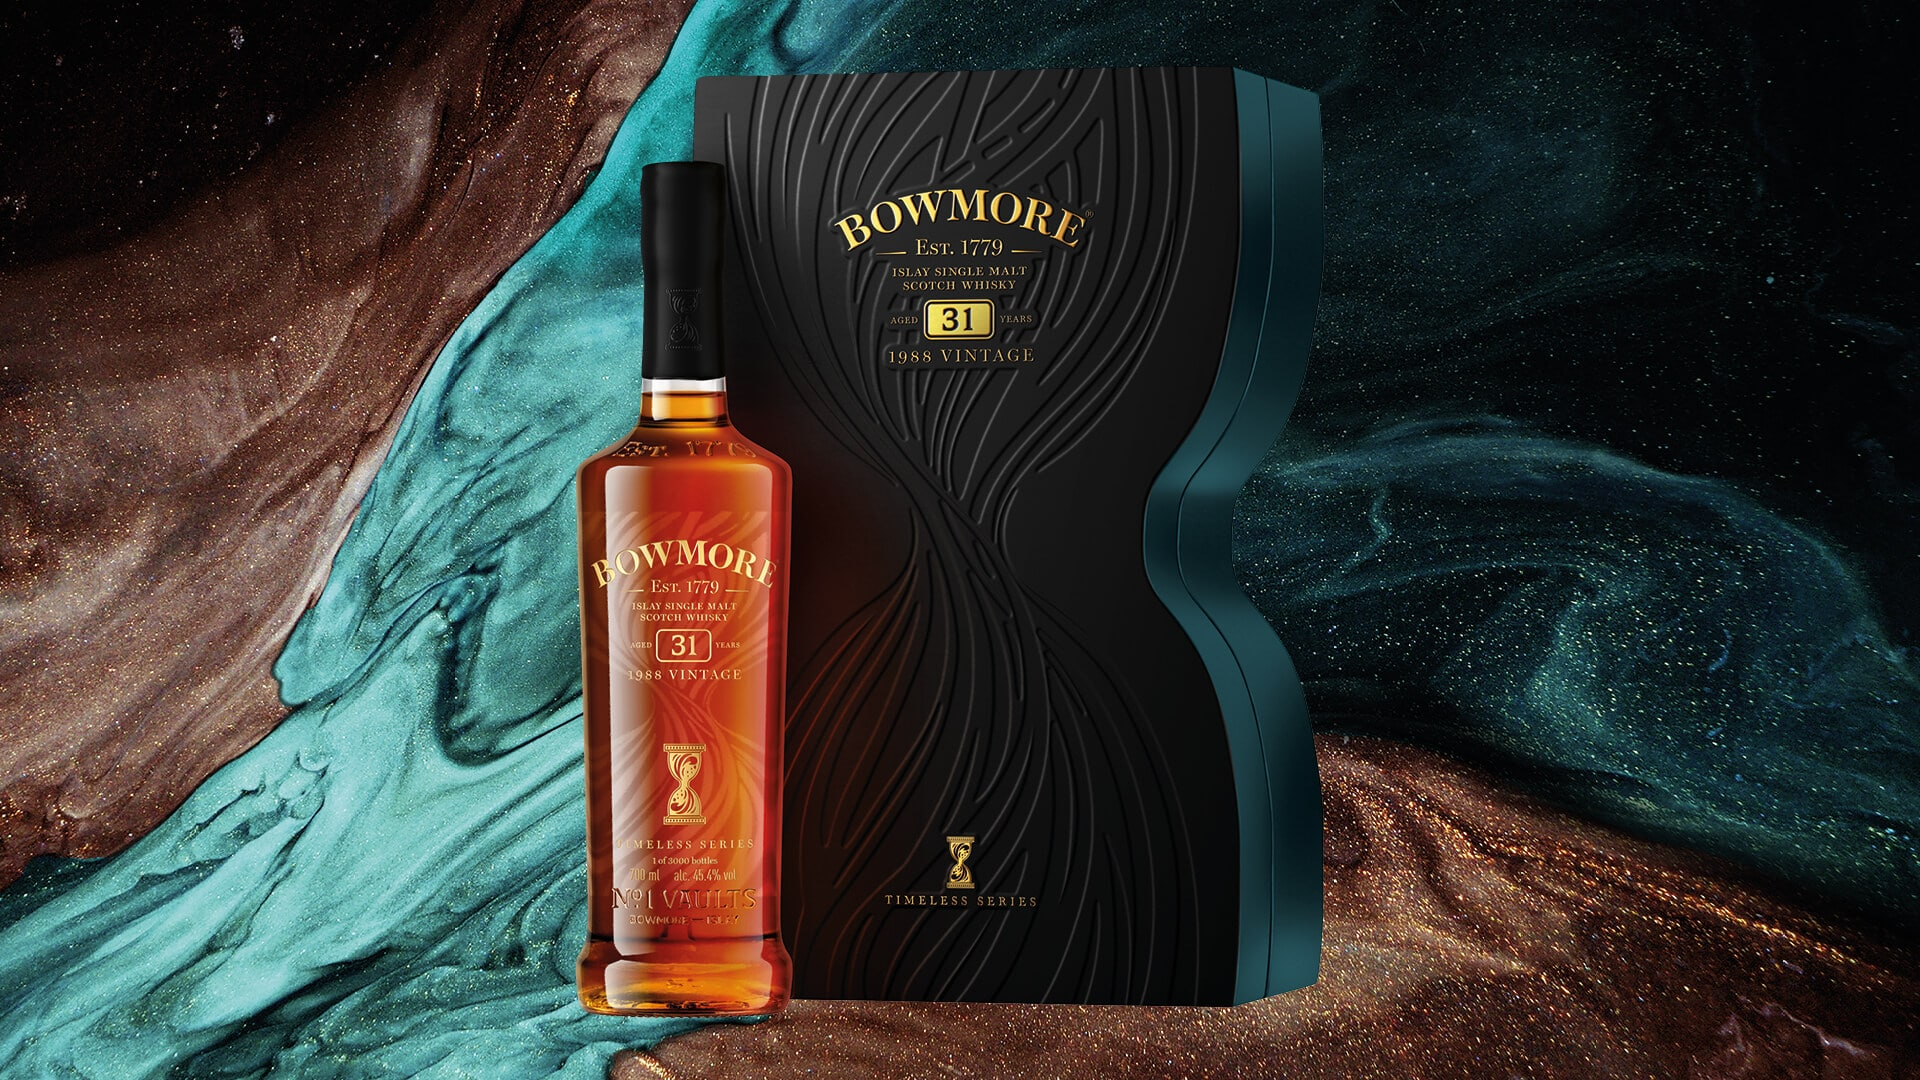 Bowmore Timeless